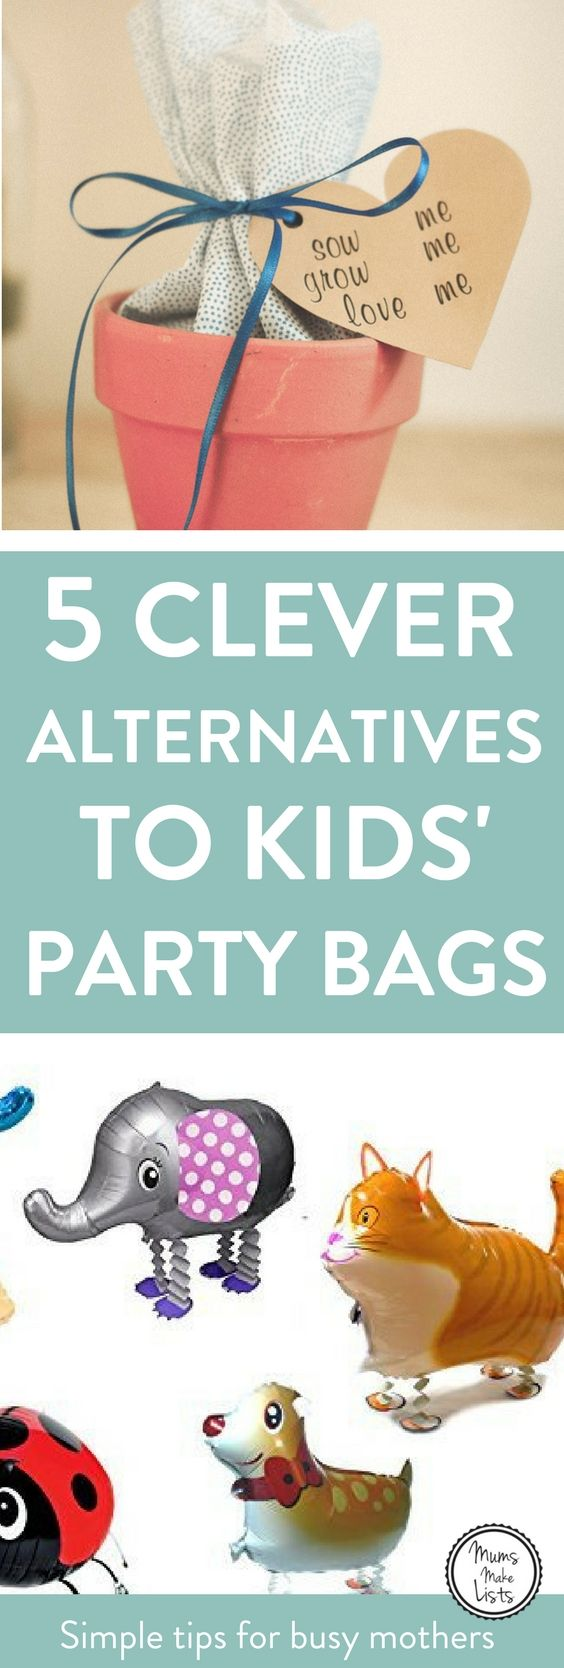 Alternative Party Bag Ideas For Kids Party Bags Kids 1st Birthday Party Bags Childrens Party Favours